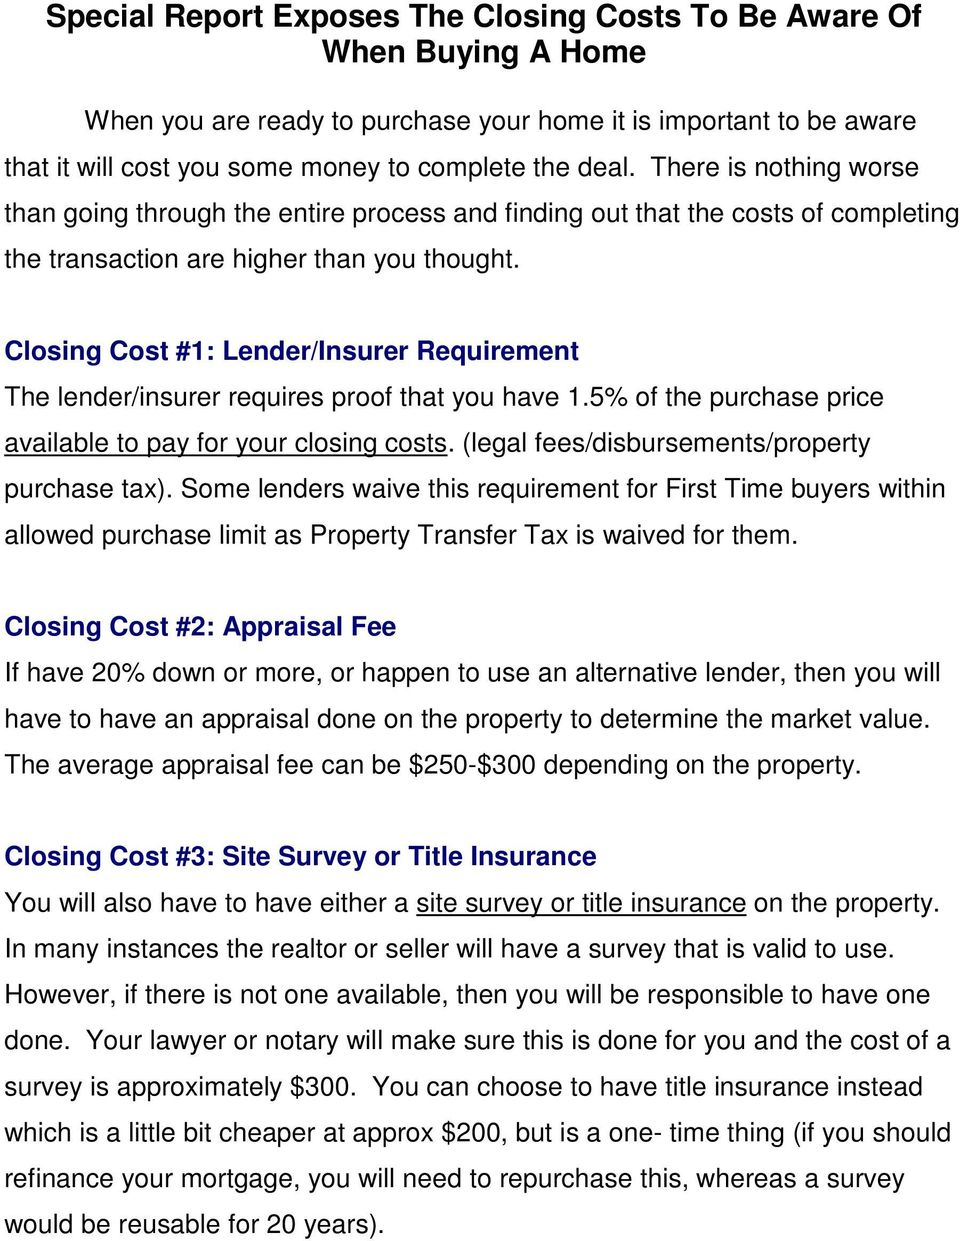 Closing Cost #1: Lender/Insurer Requirement The lender/insurer requires proof that you have 1.5% of the purchase price available to pay for your closing costs.